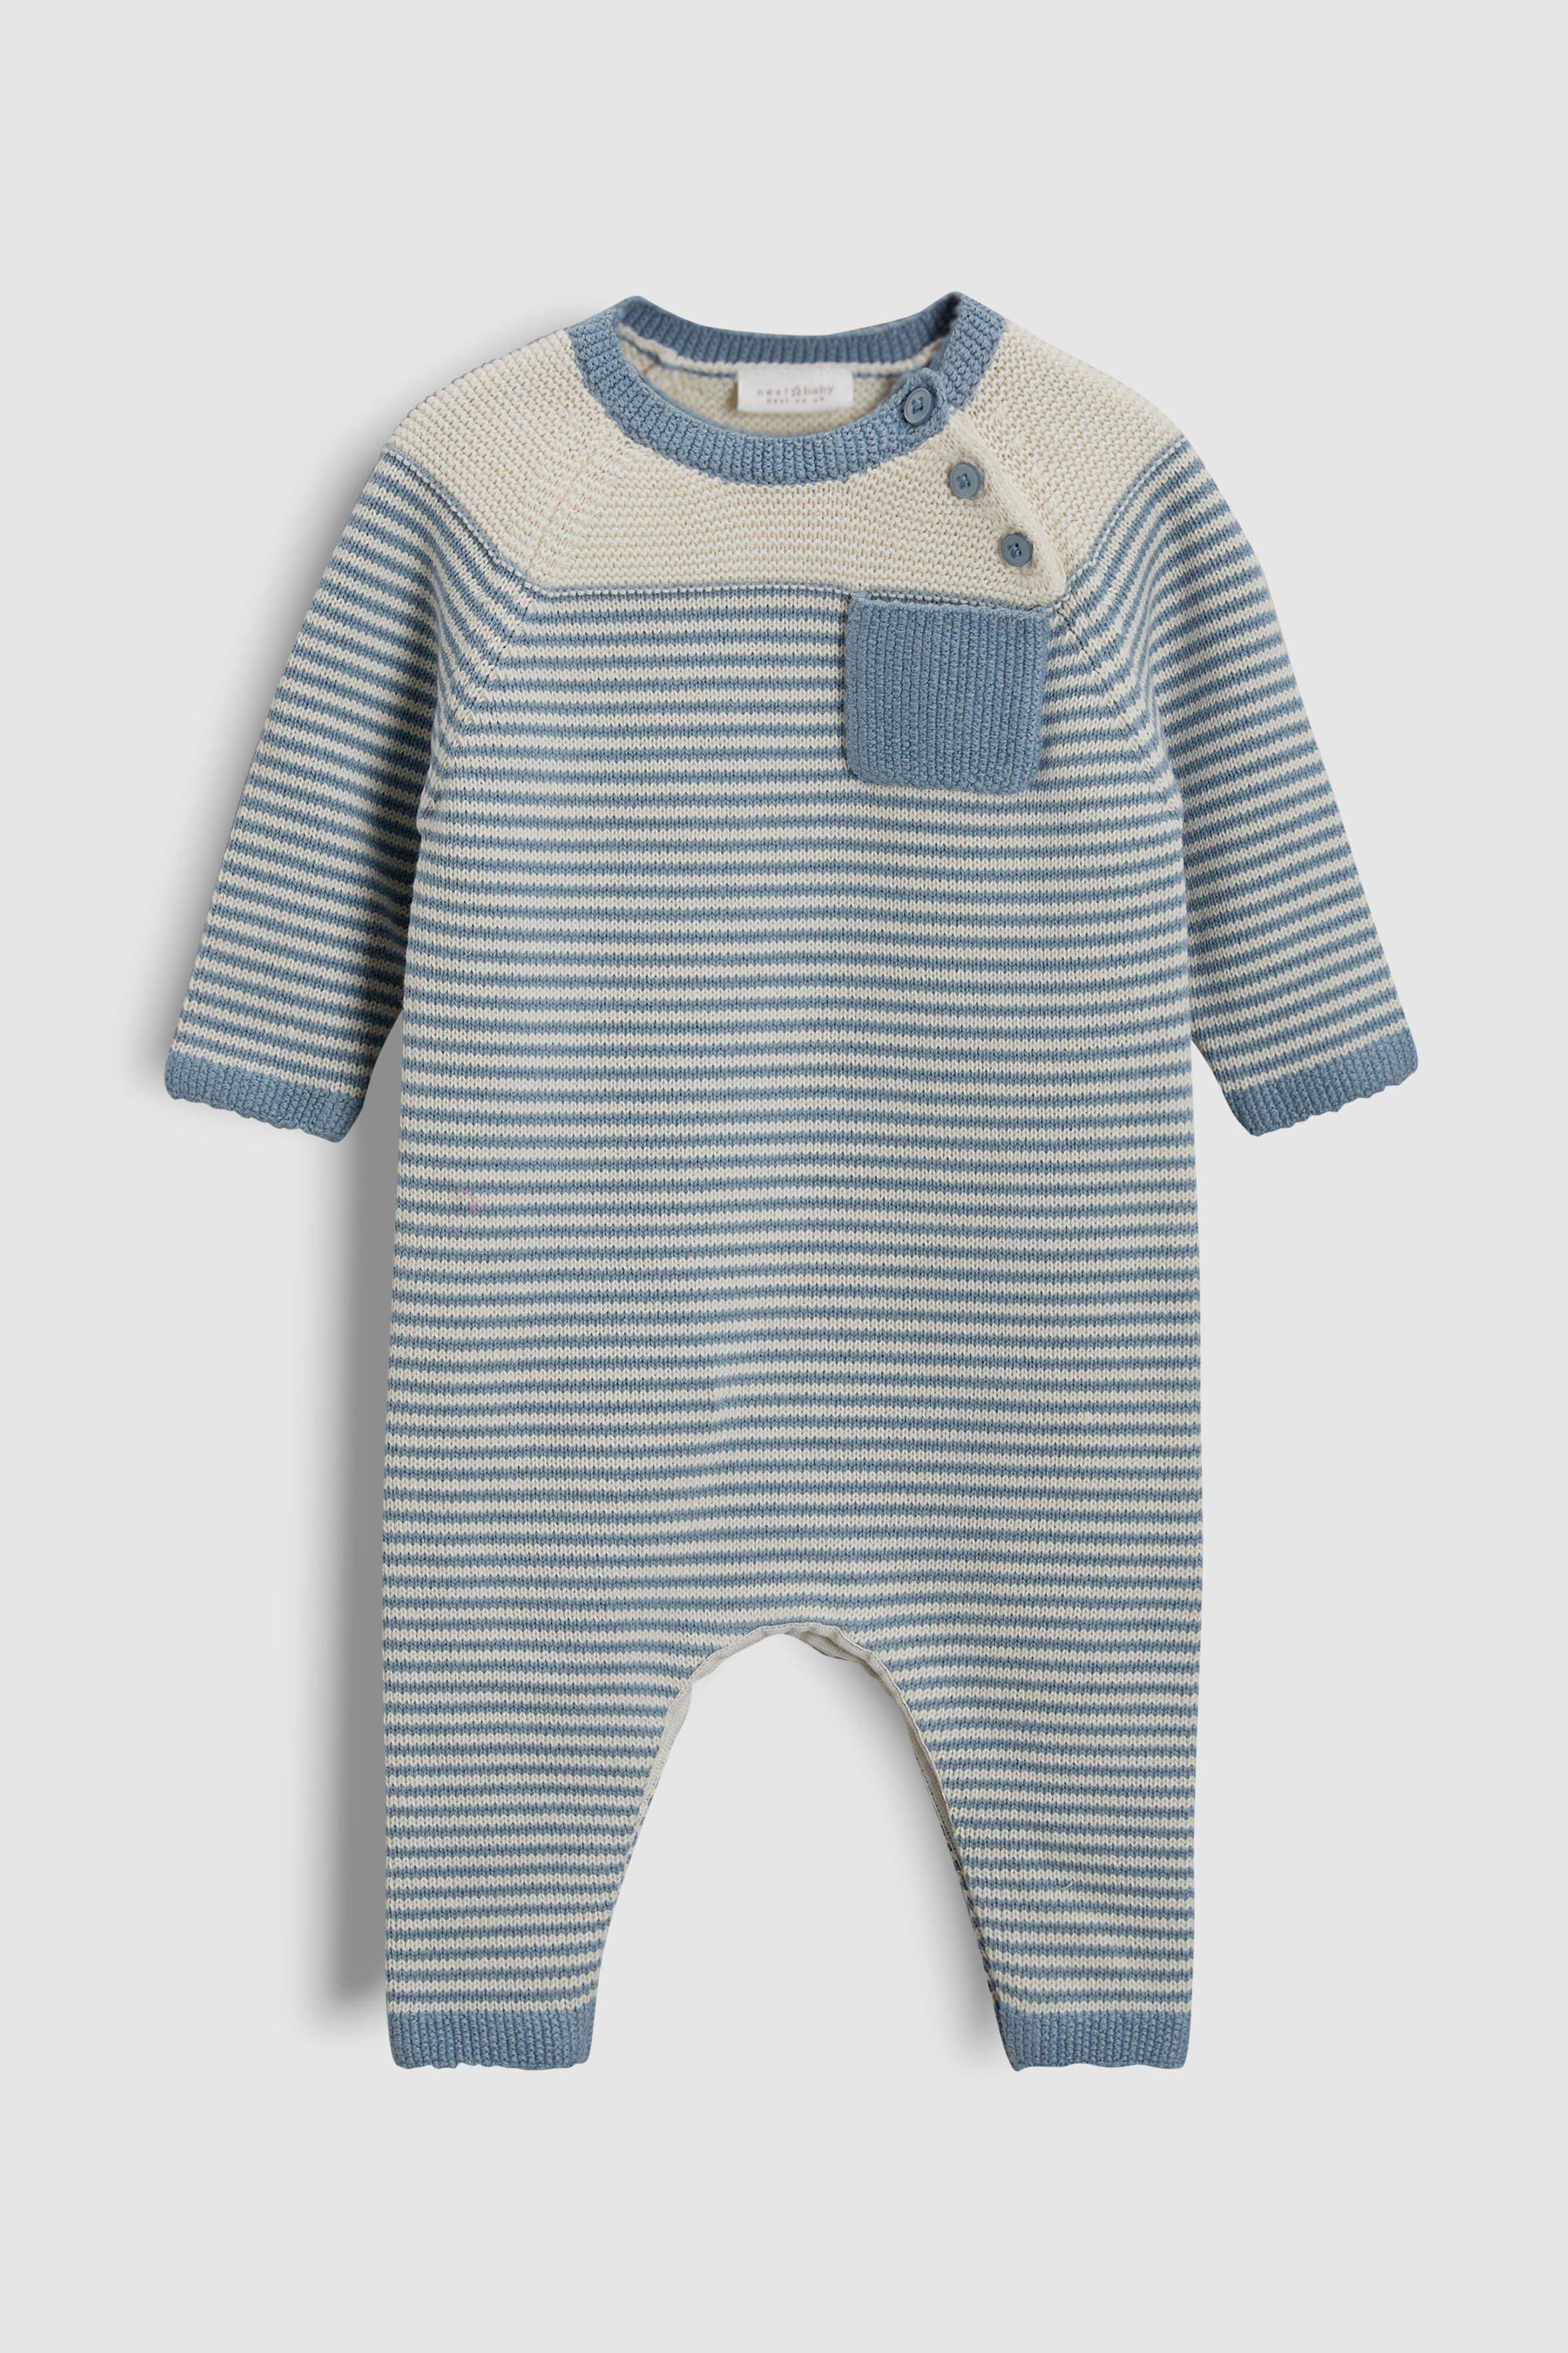 BLUES BABY Boys Rib 2PC Knitted Set Short Sleeve Cotton Cable Knitted Sweater Shirt with Shorts